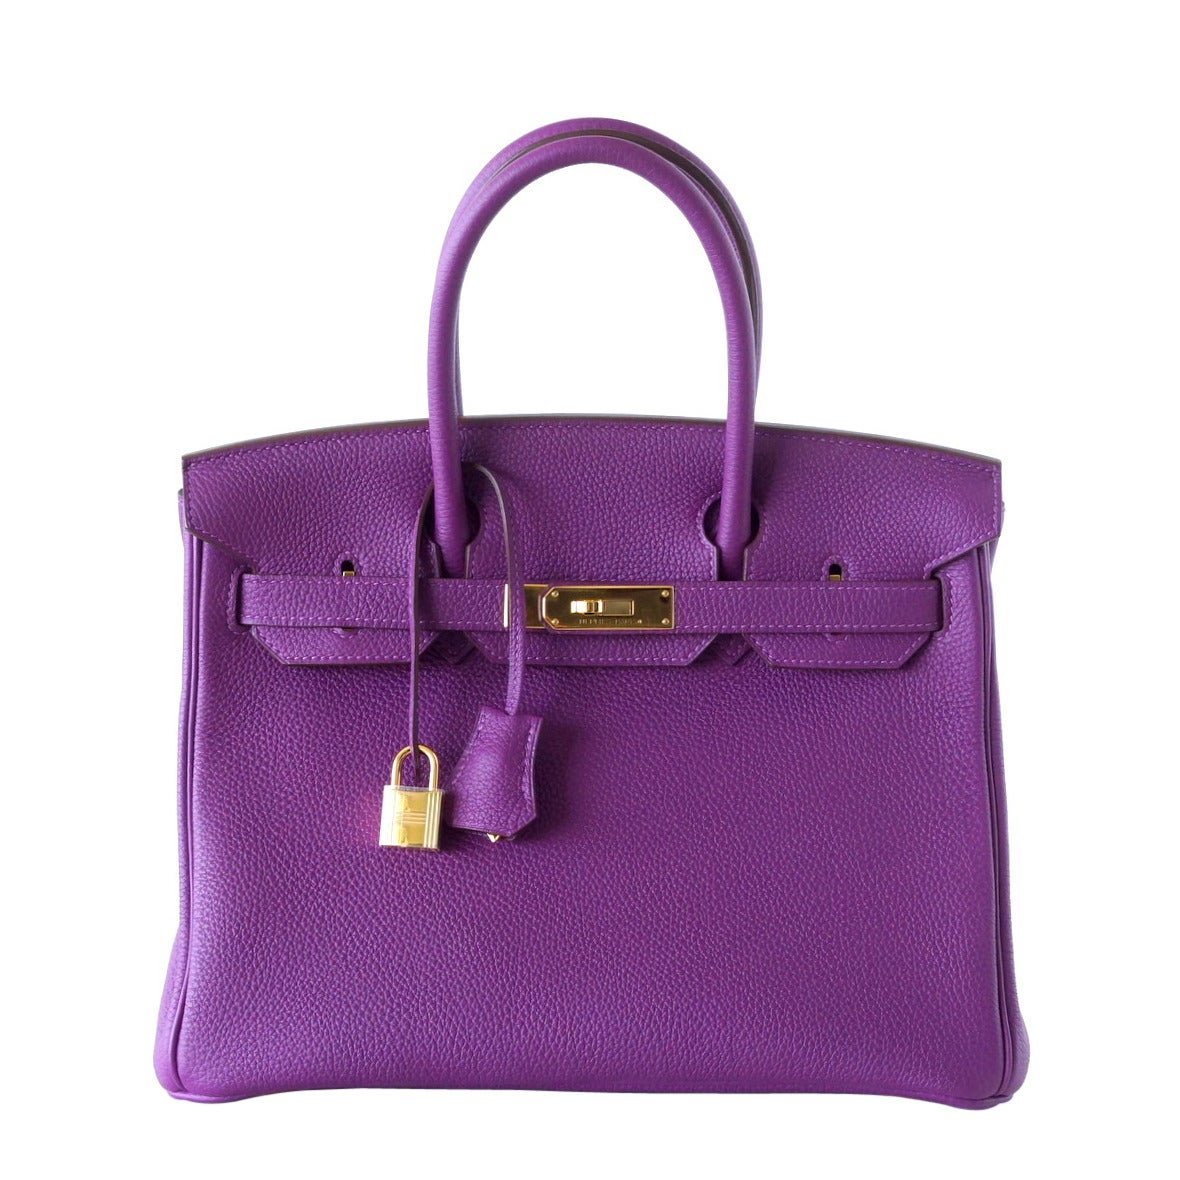 Hermes Birkin 30 Anemone Purple Togo Gold Hardware Exotic Beauty